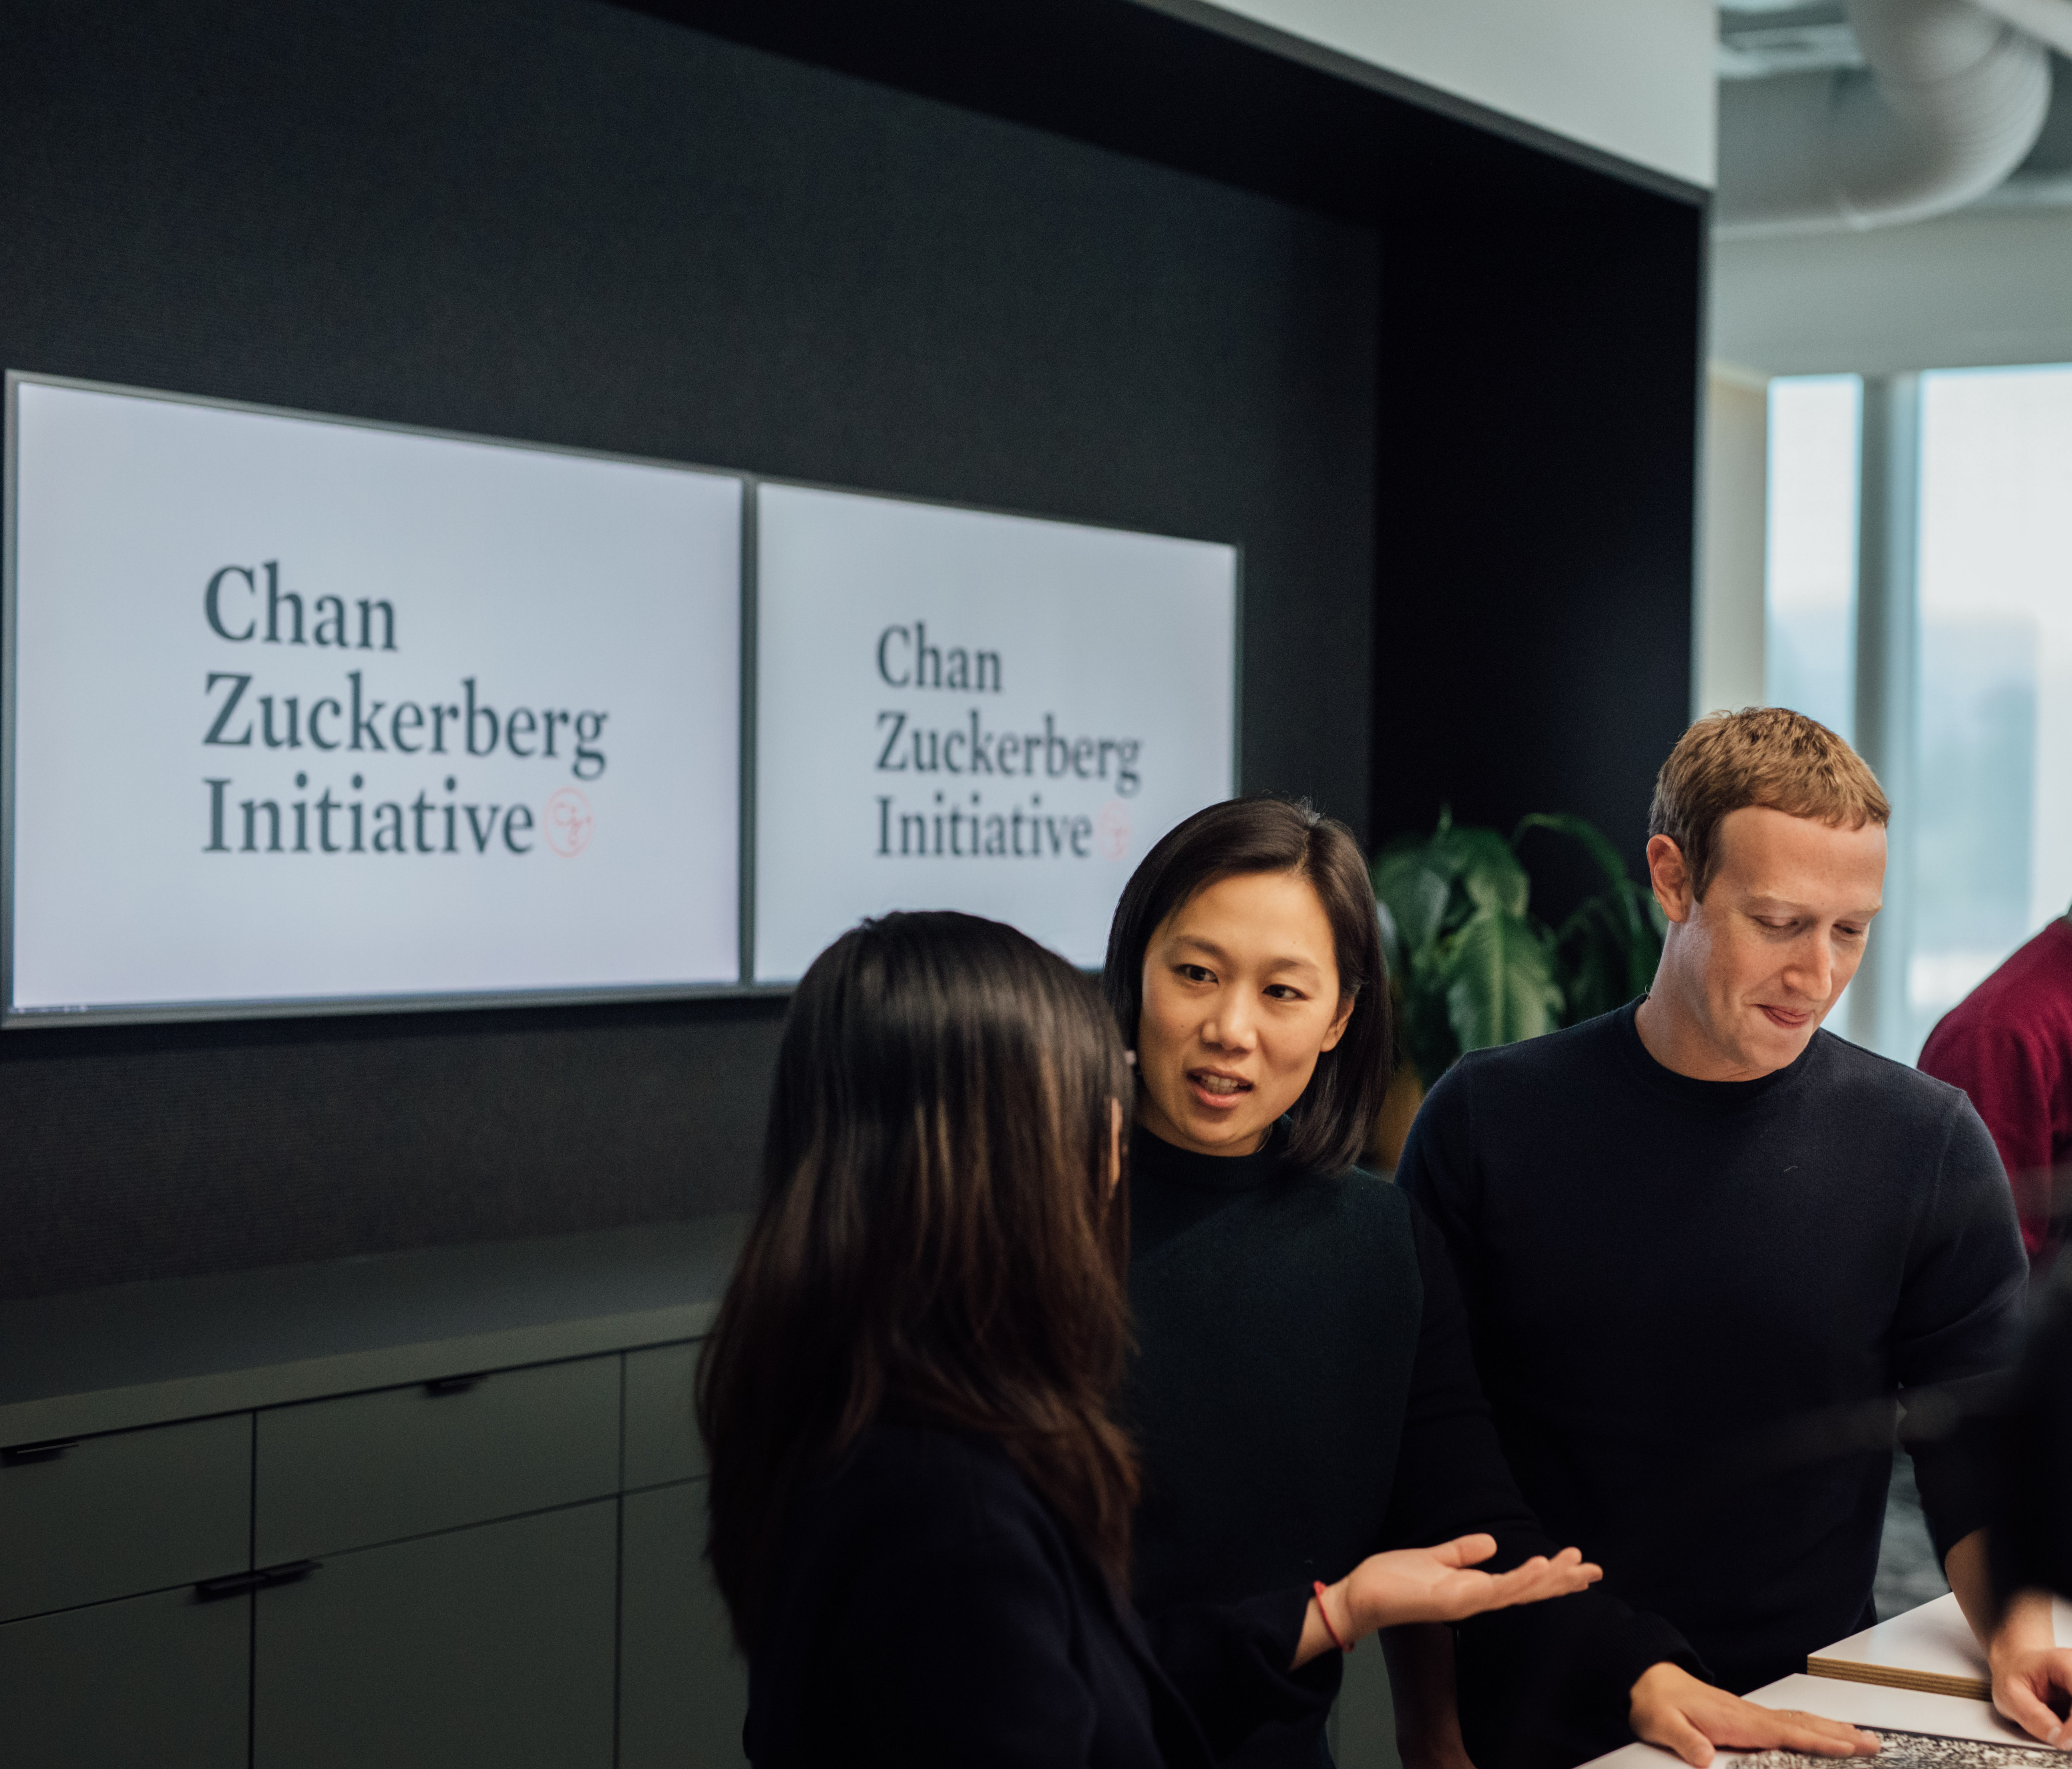 """Priscilla Chan and Mark Zuckerberg speak with another person in front of a sign reading, """"Chan Zuckerberg Initiative."""""""